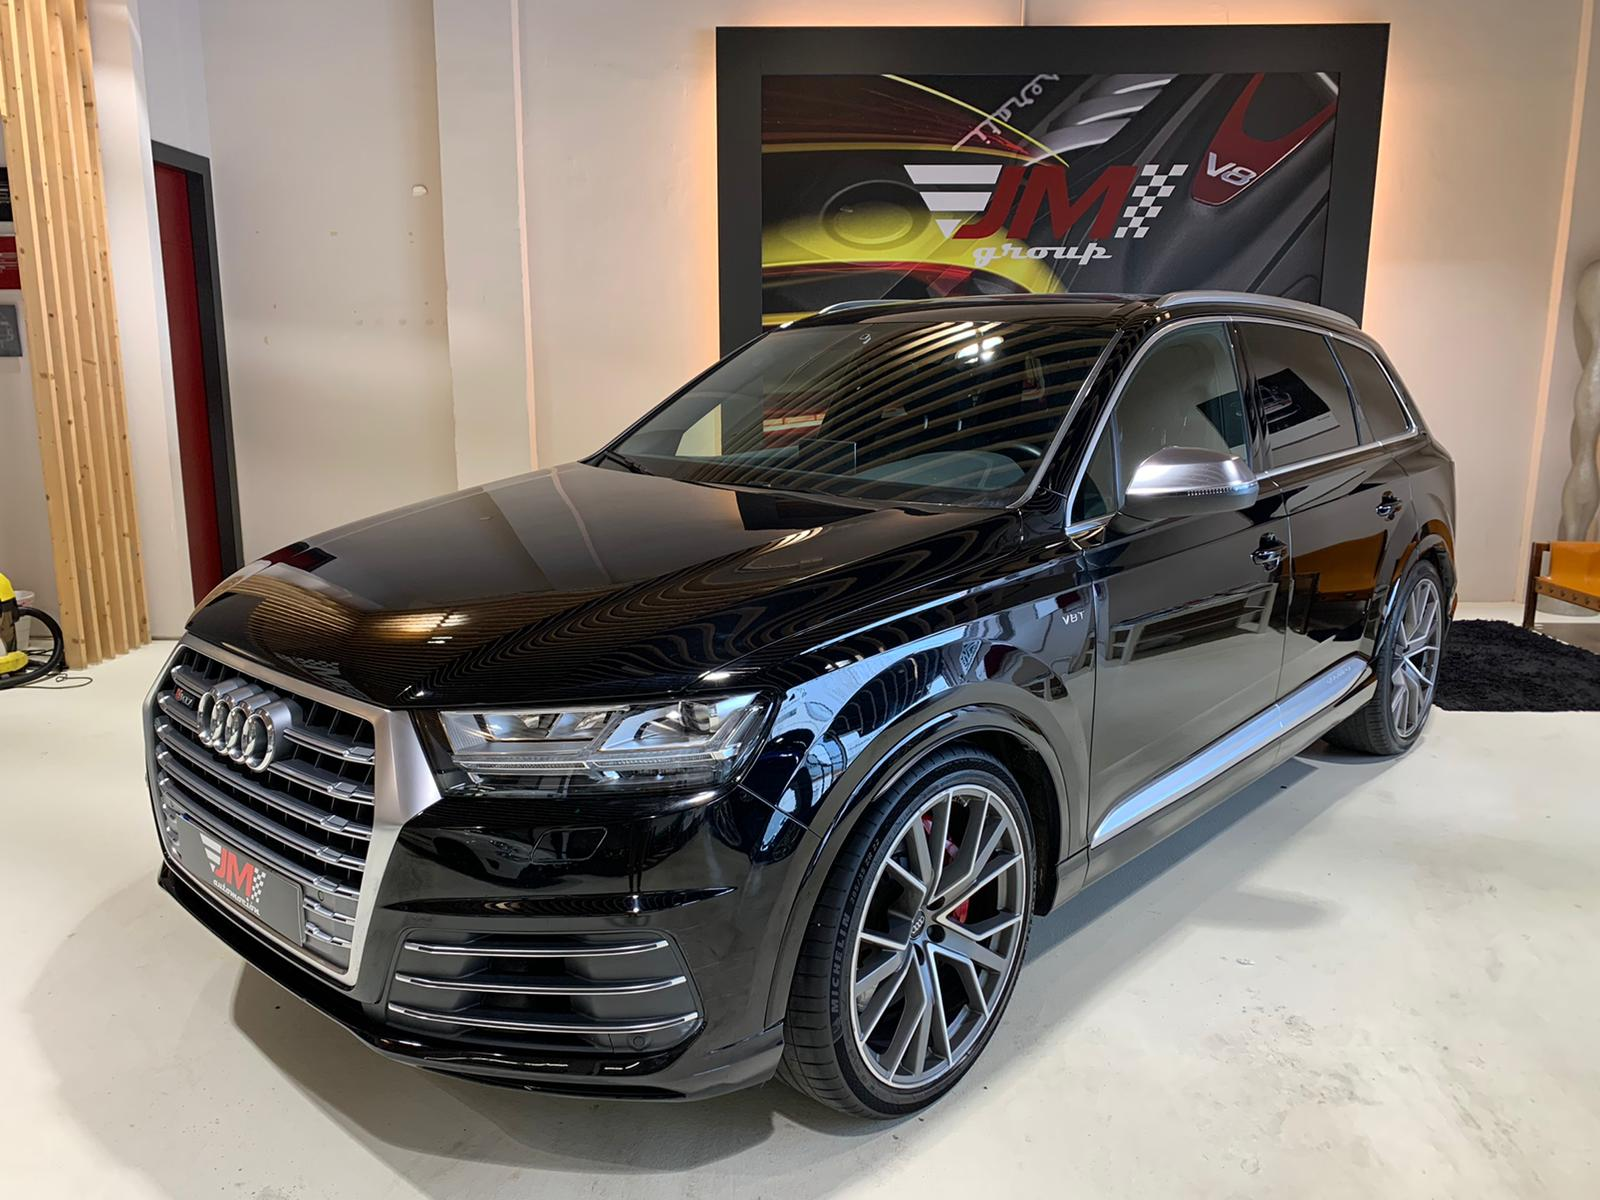 AUDI SQ7 TDI 4.0 NACIONAL, IVA DEDUCIBLE